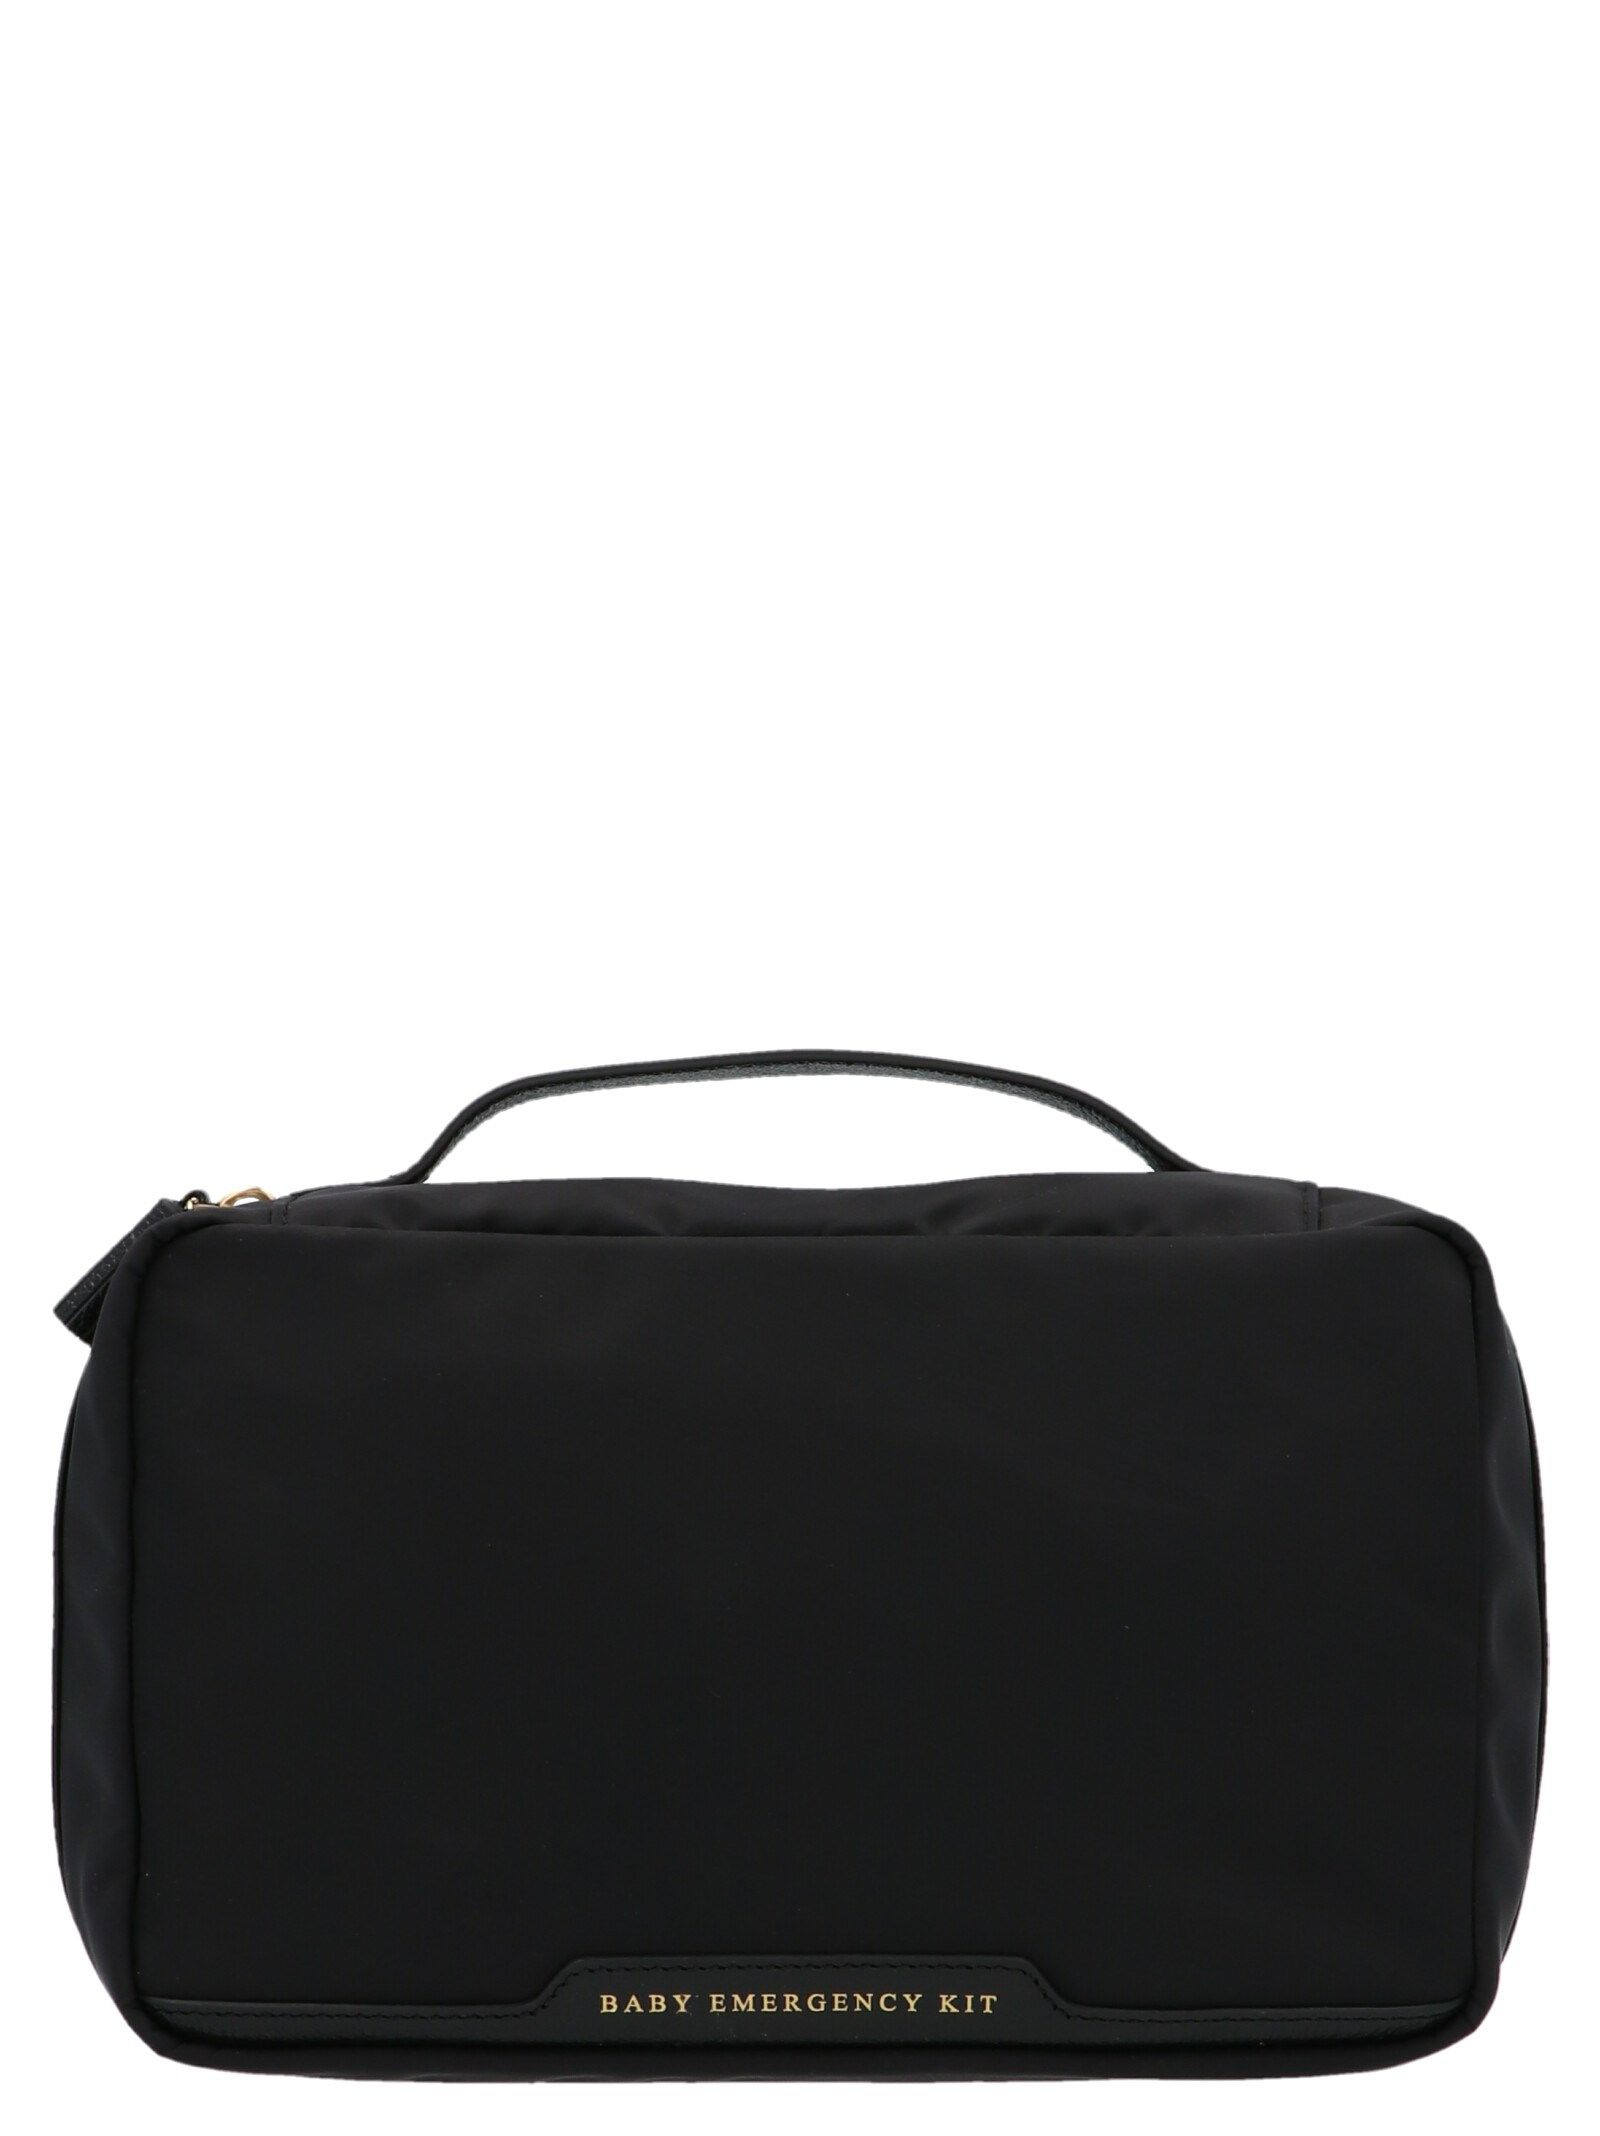 Anya Hindmarch ANYA HINDMARCH WOMEN'S BLACK BEAUTY CASE